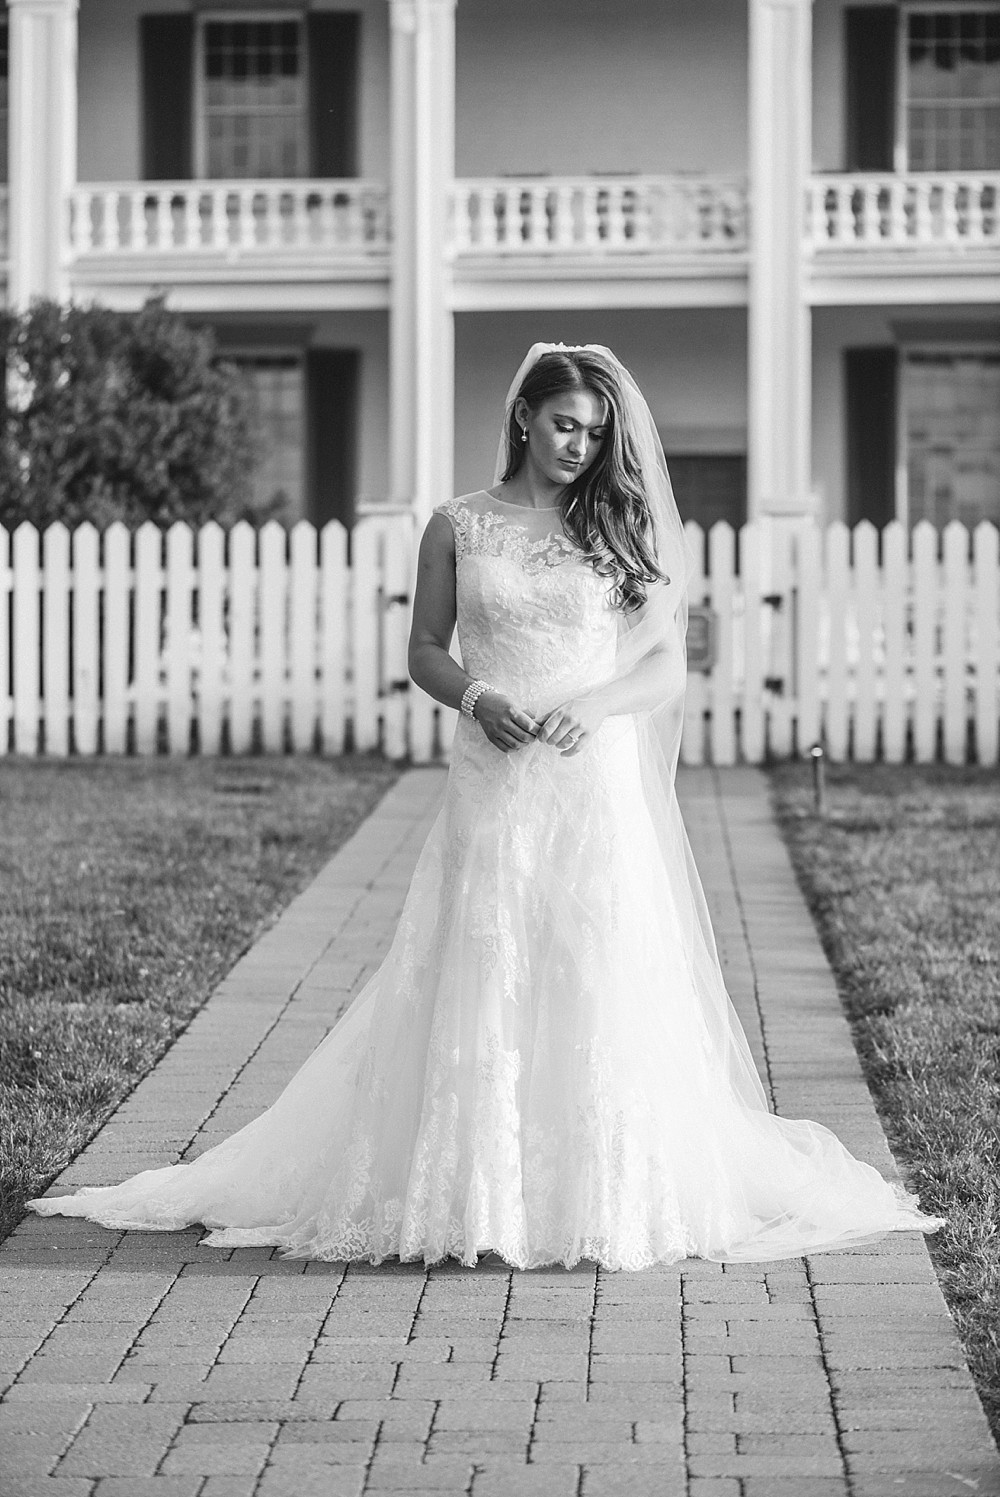 Bridal Portrait at Carnton Plantation in Franklin TN. Simple, Beautiful. Bride in front of historic home.